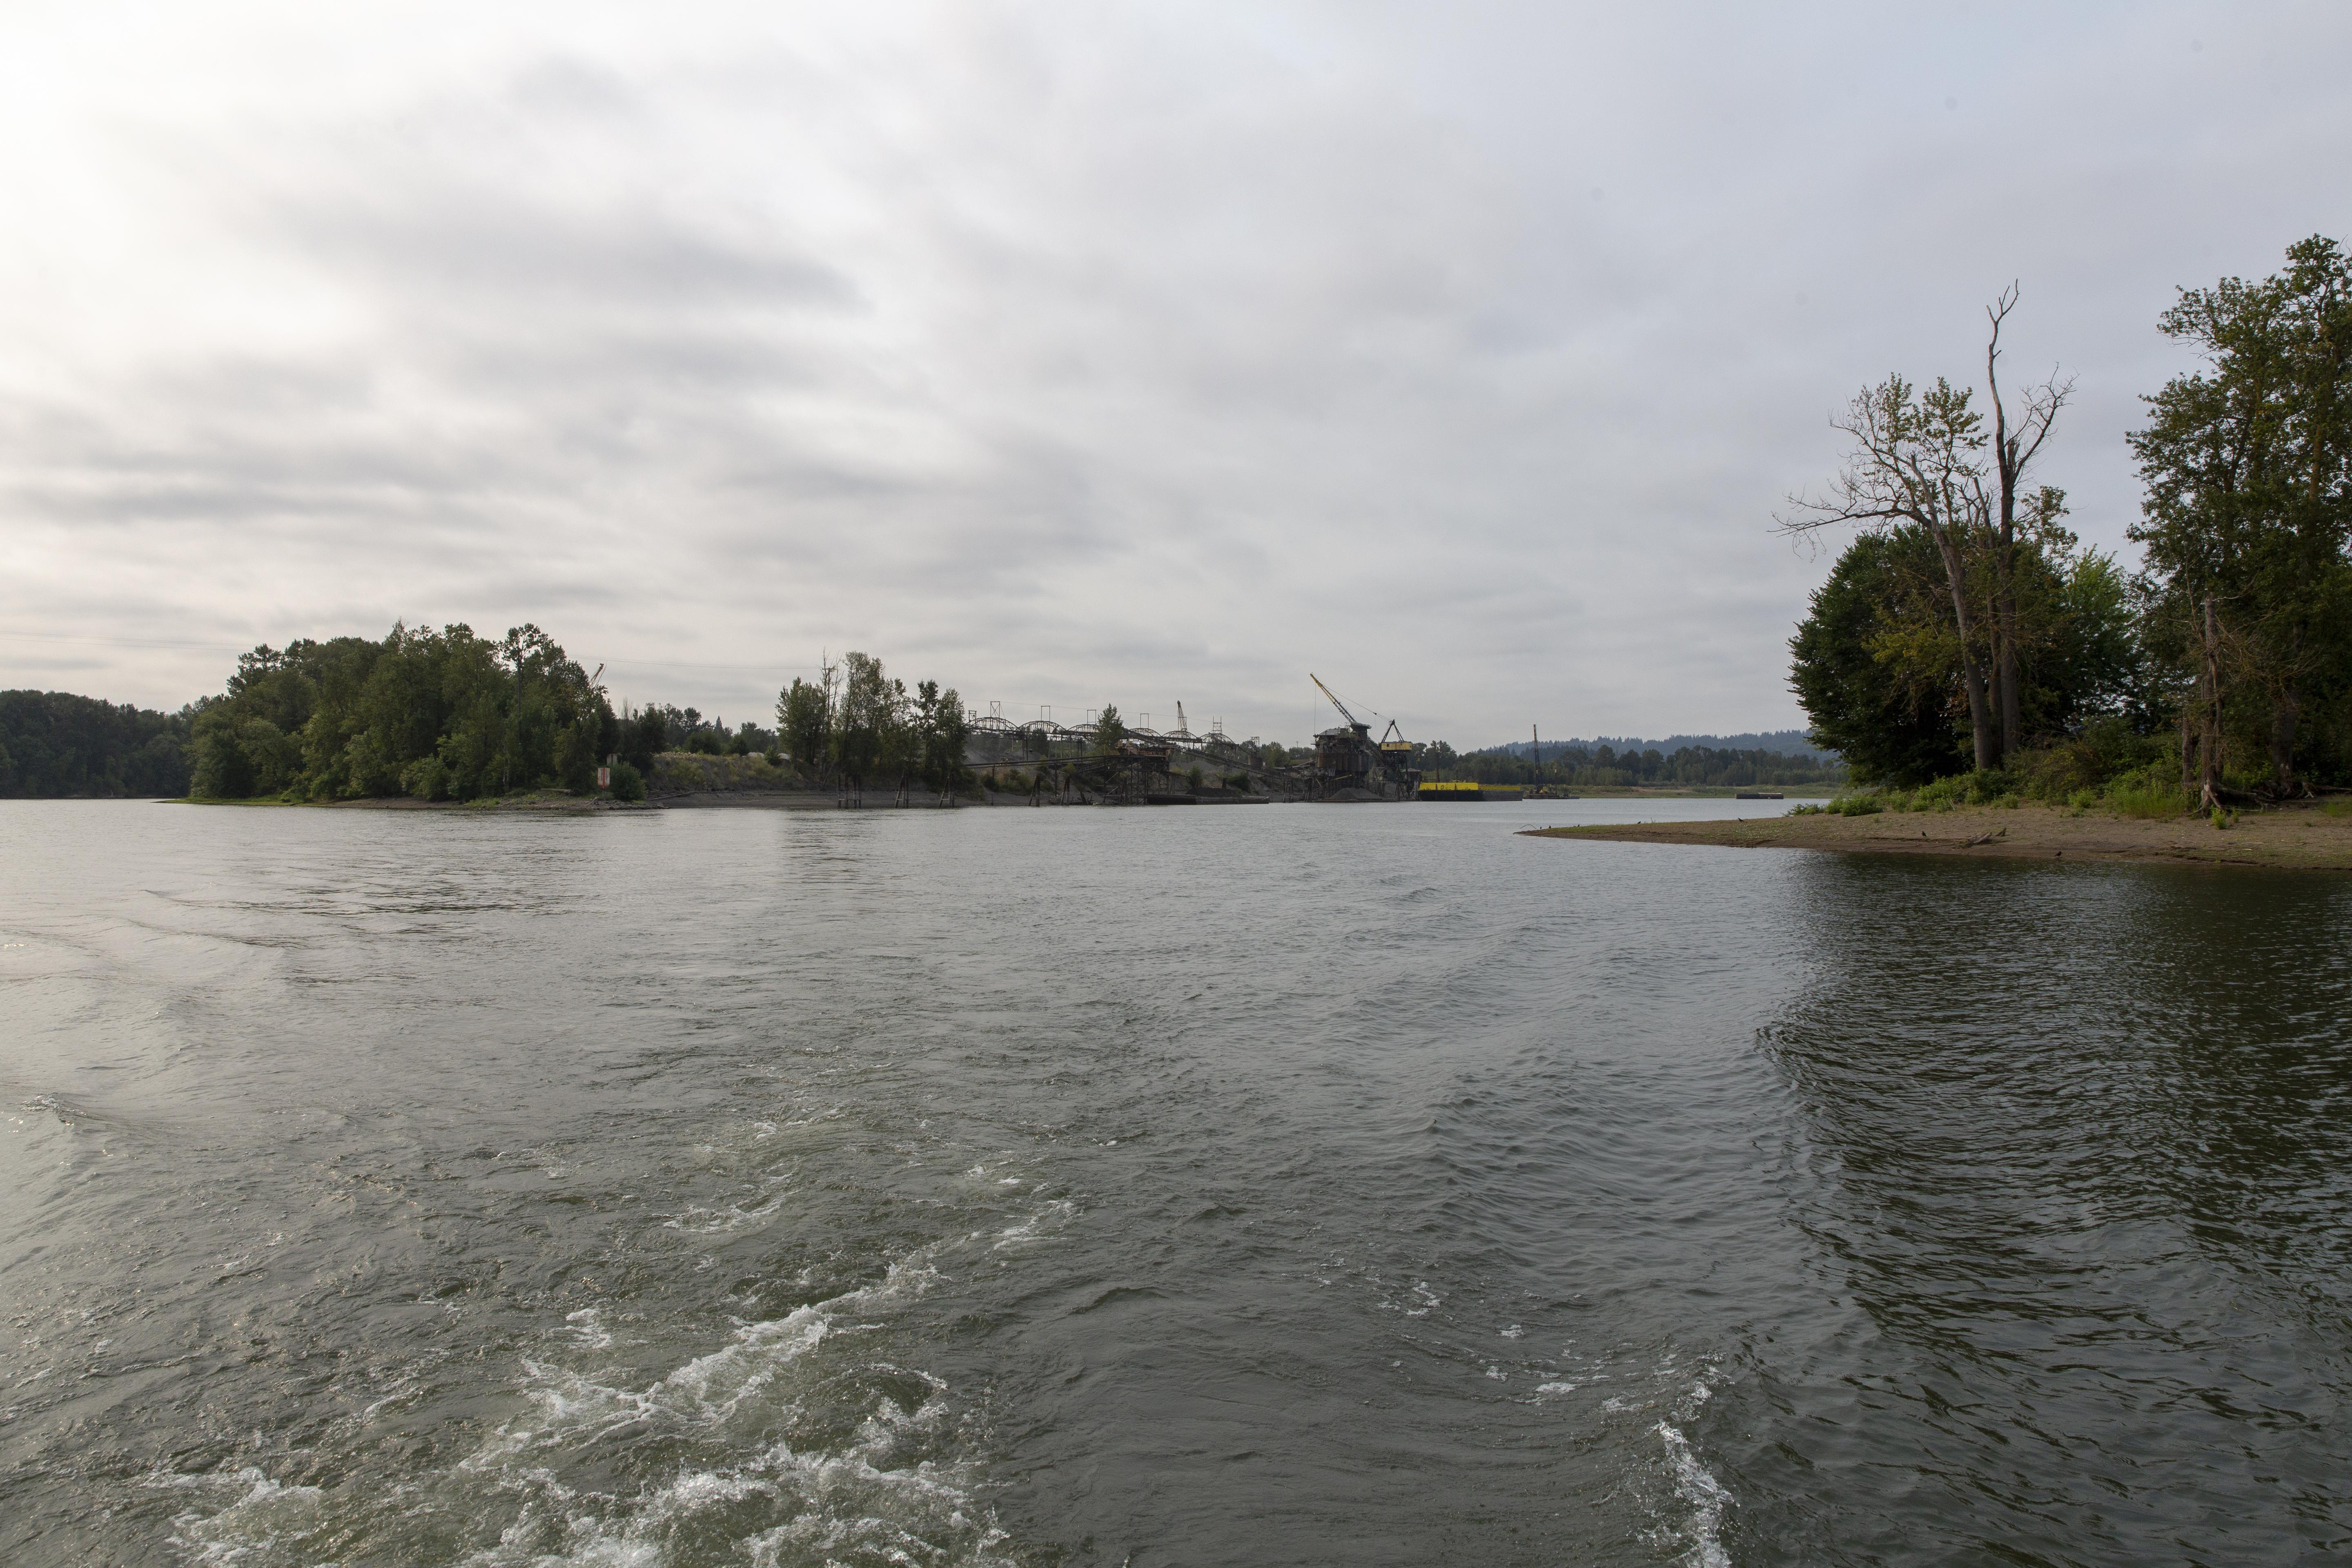 The Ross Island Lagoon is the site of a recent blue-green algae bloom contaminating the Willamette river.